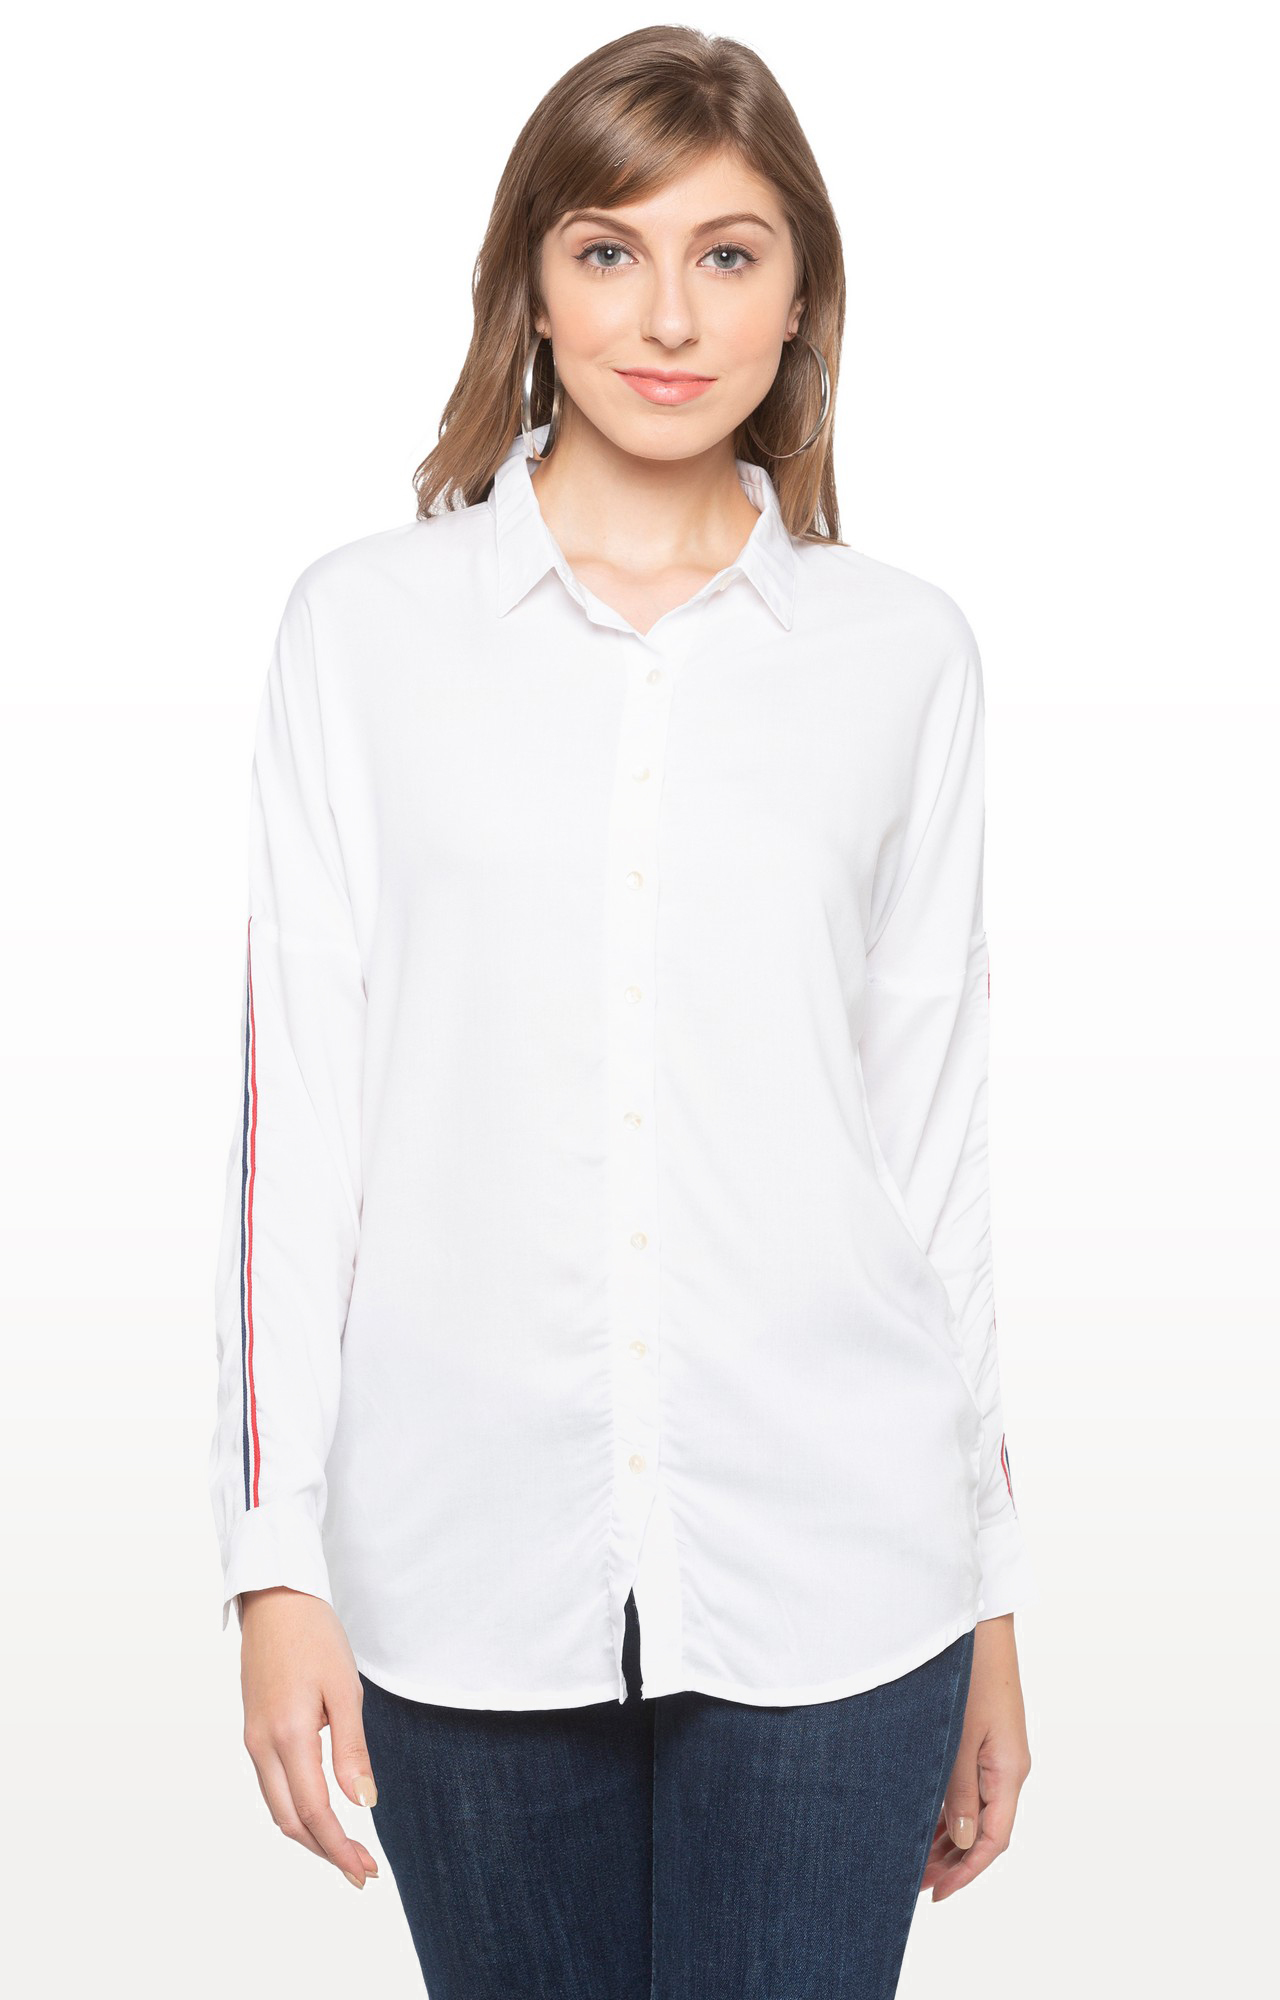 globus   White Solid Casual Shirt